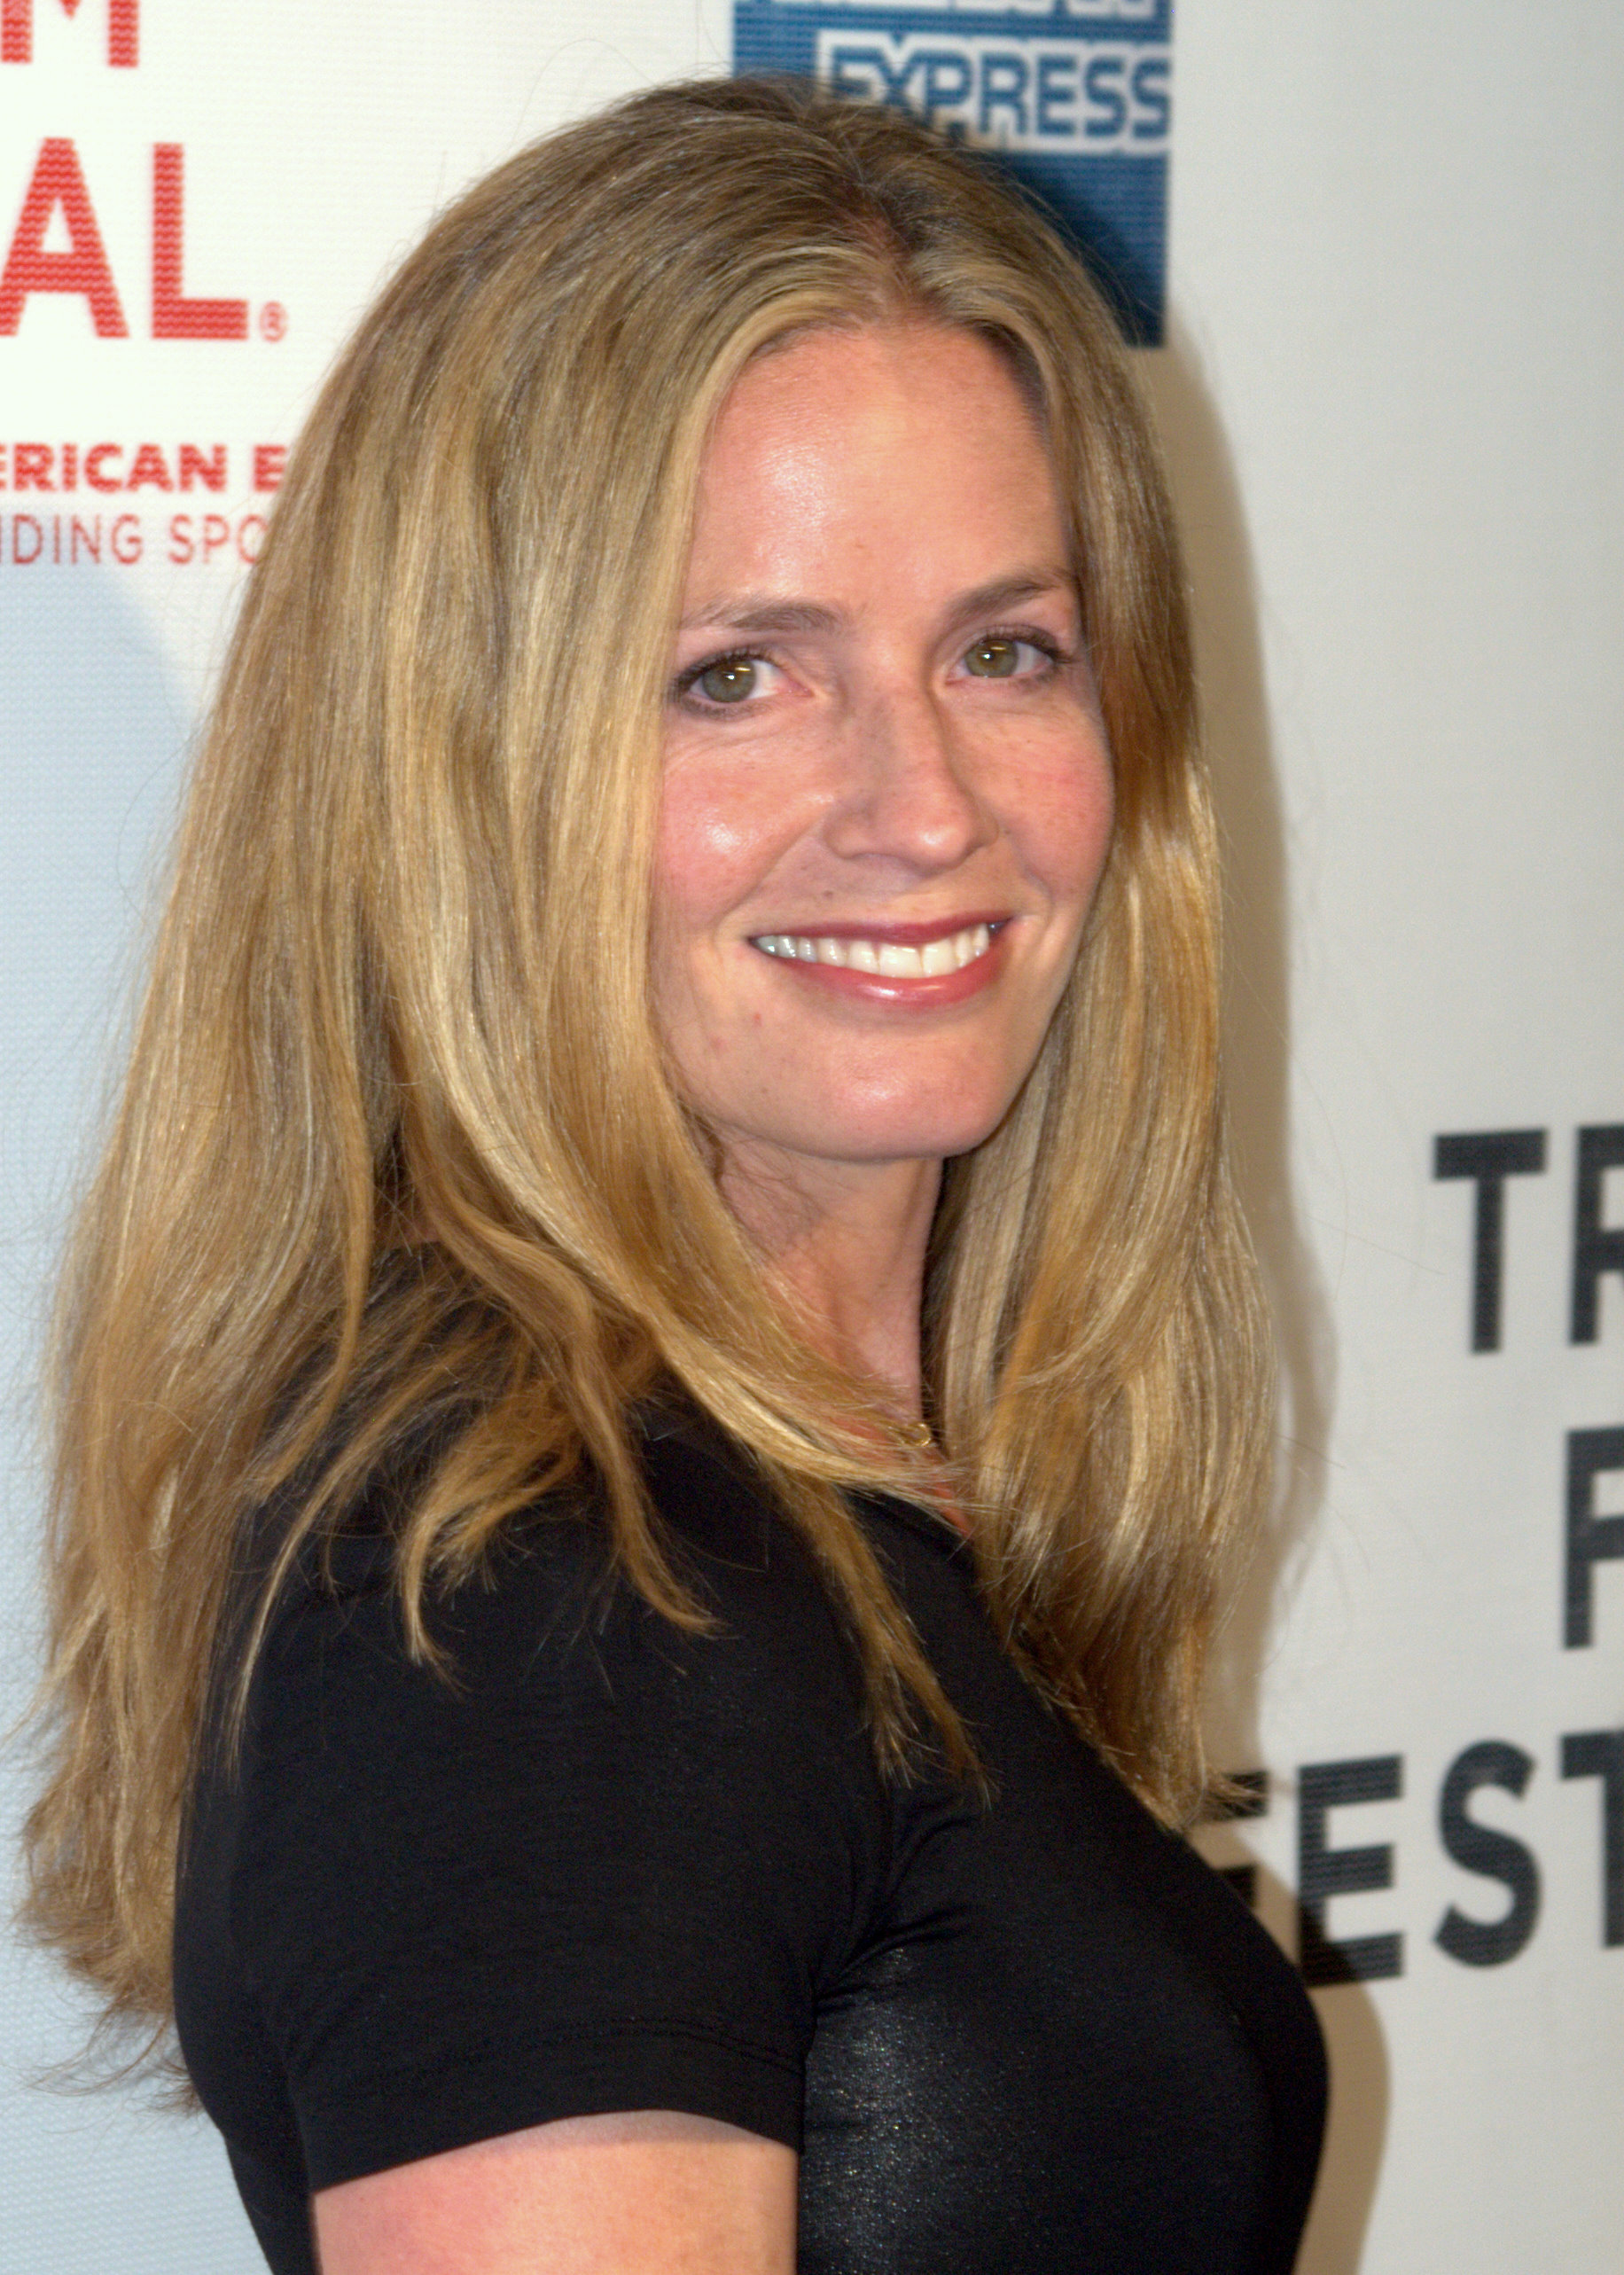 http://upload.wikimedia.org/wikipedia/commons/d/de/Elisabeth_Shue_at_the_2009_Tribeca_Film_Festival_2.jpg